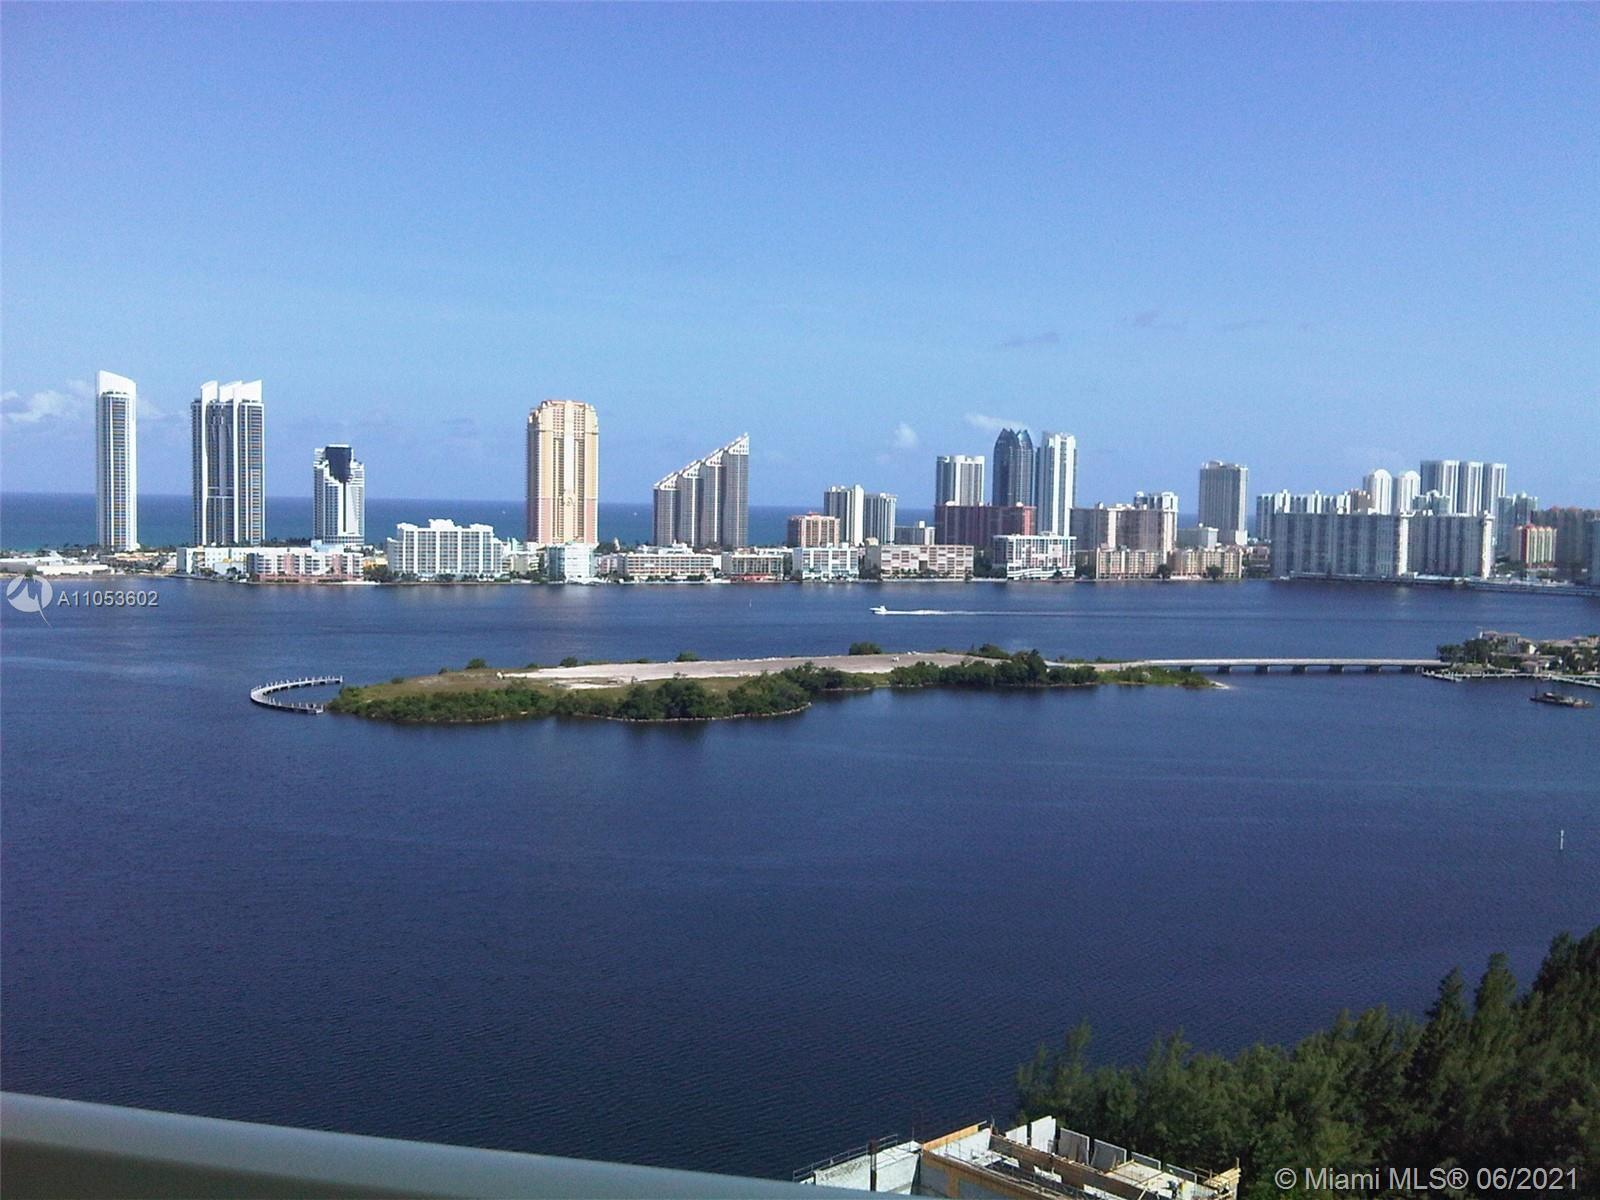 Aventura Marina Condo is a secluded enclave with water views, marina, biking and walking path. Avent